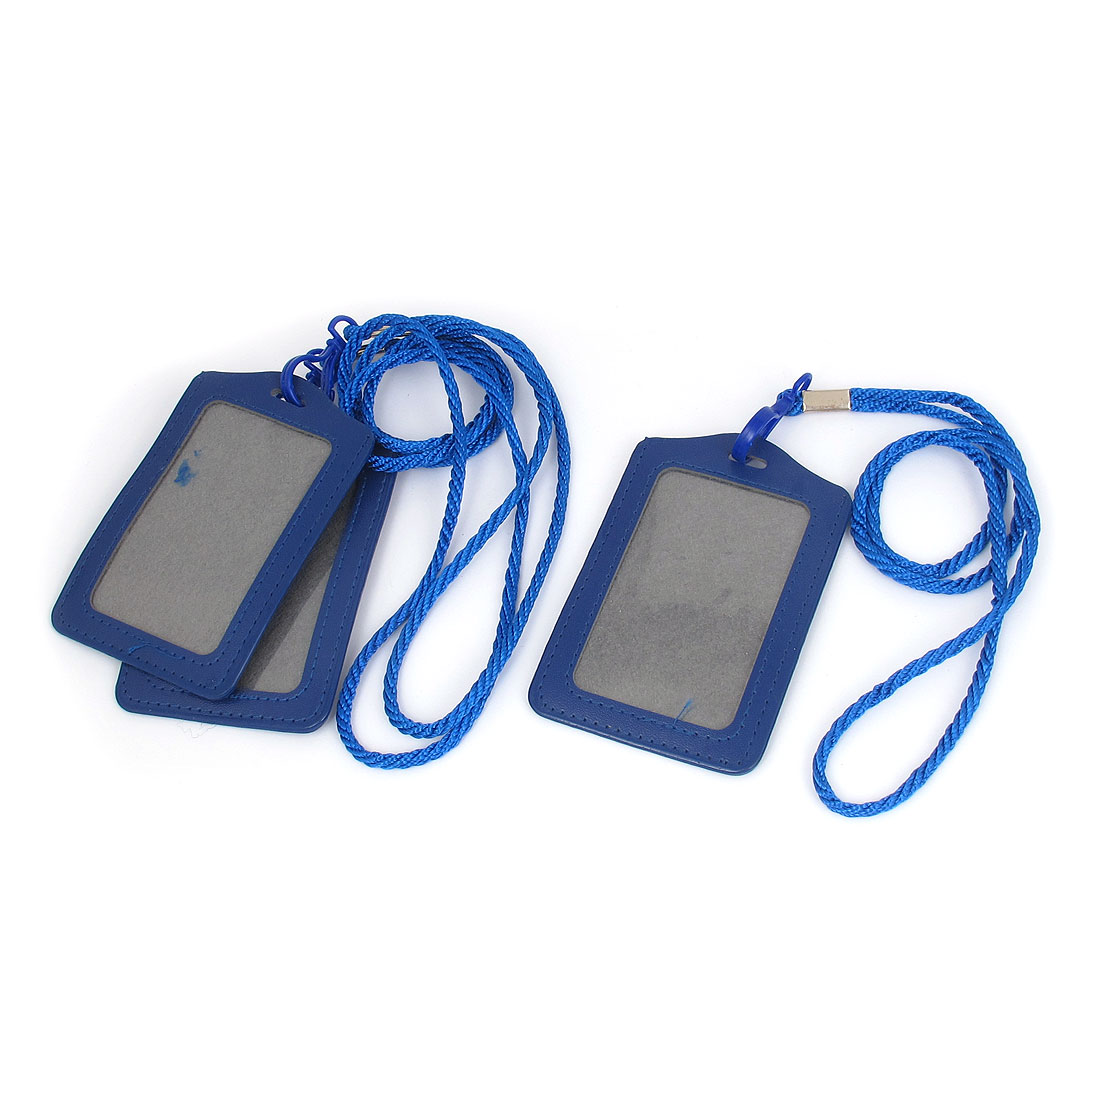 Office School Neck String Lanyard Vertical ID Card Badge Holder Blue 3Pcs